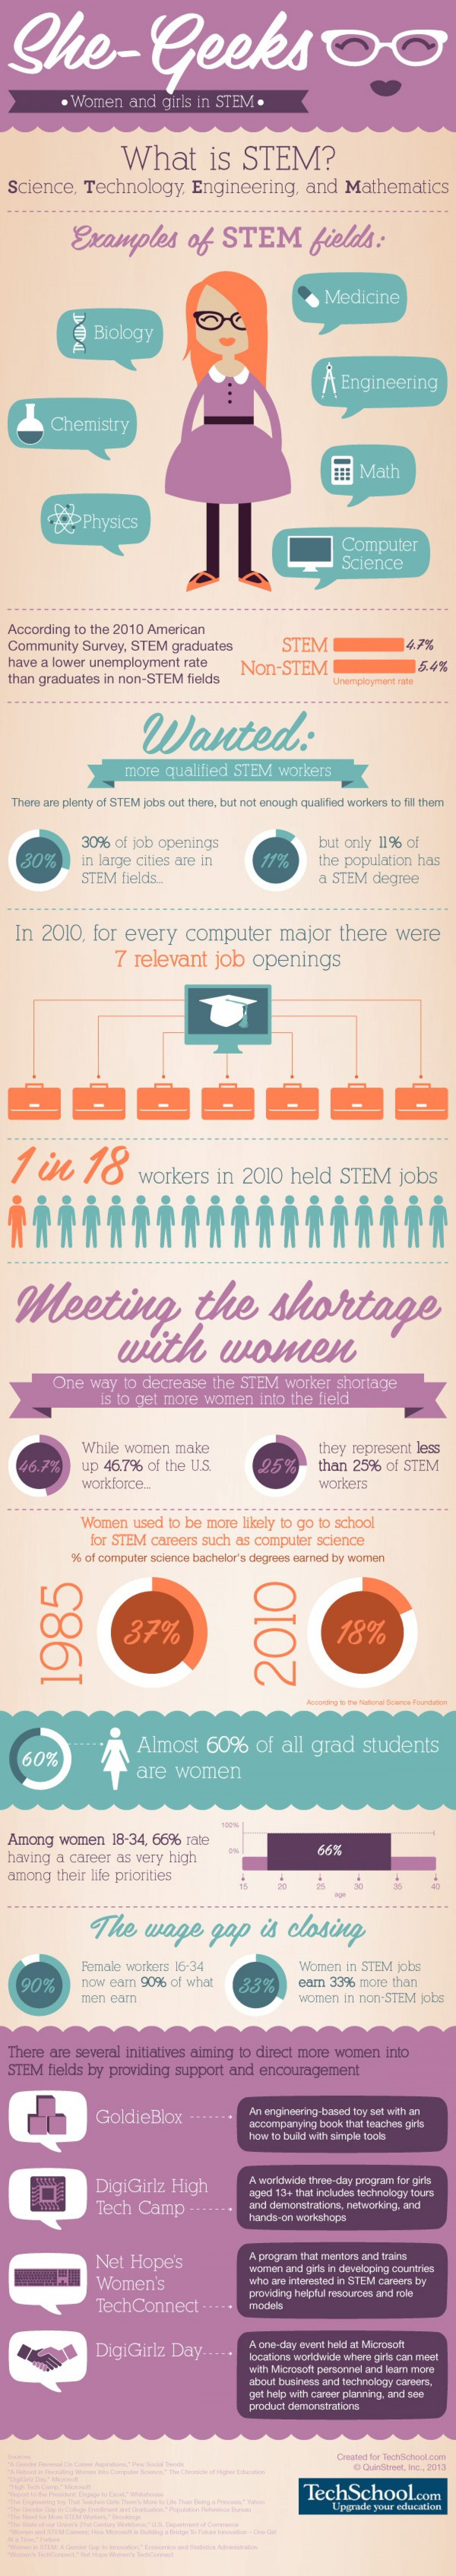 She Geeks: A Look at Women in STEM Careers Infographic